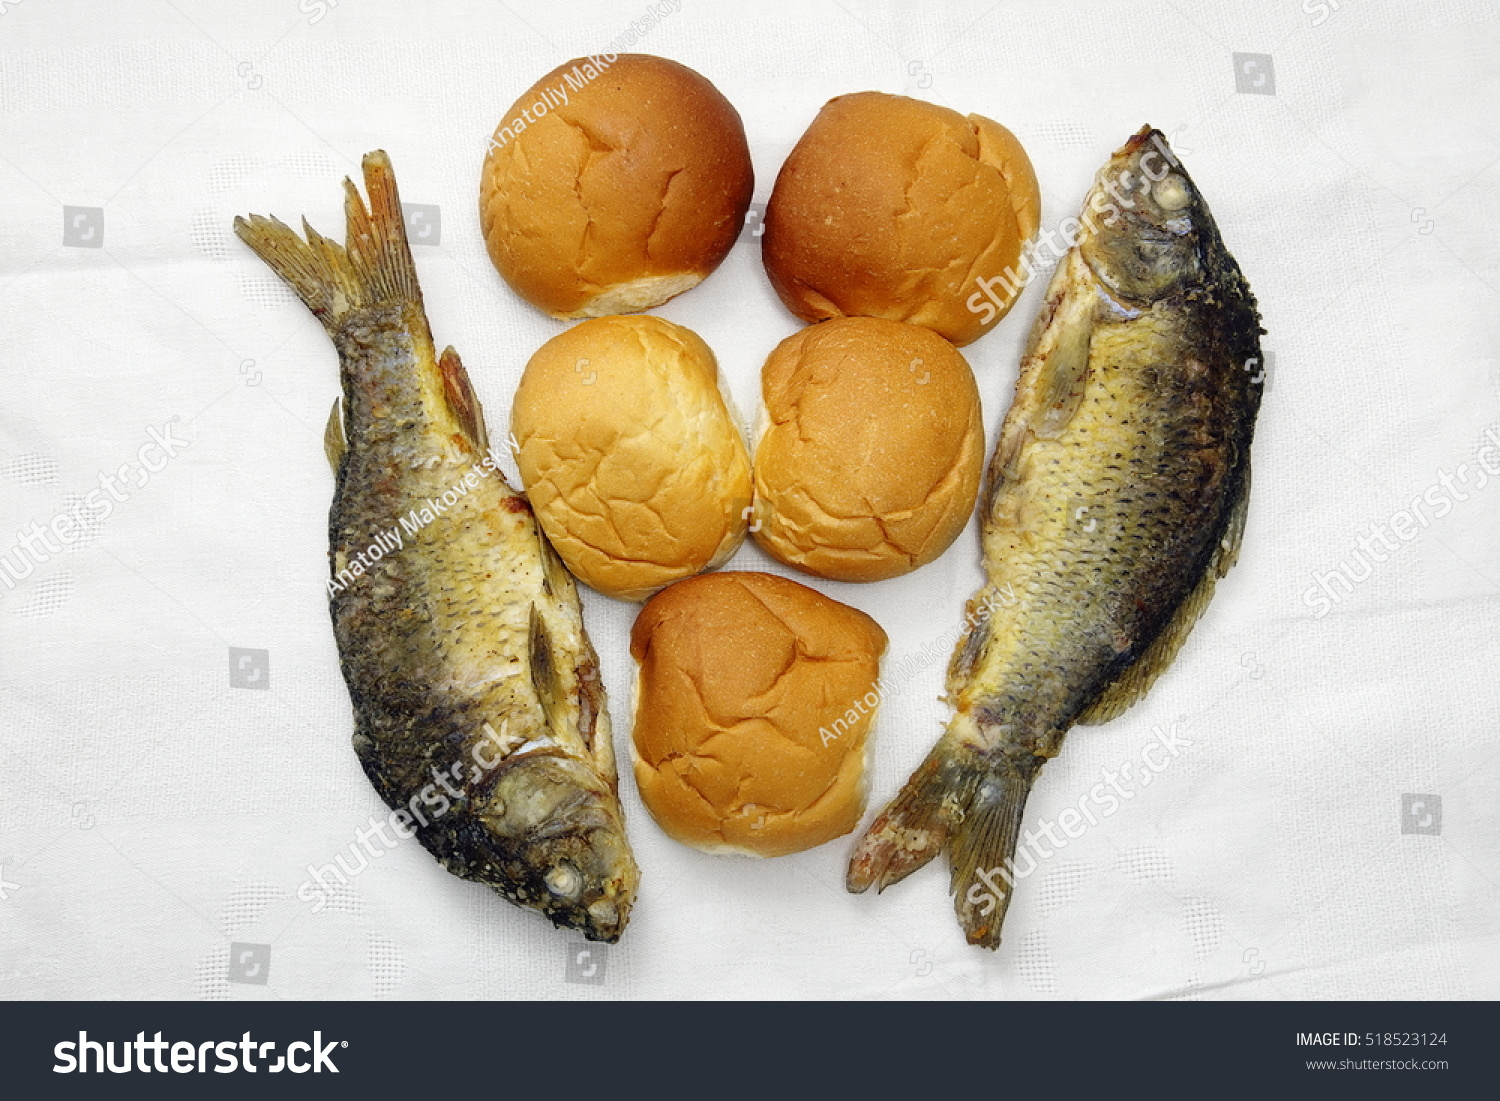 Five loaves two fishes stock photo 518523124 shutterstock for Loaves and fish